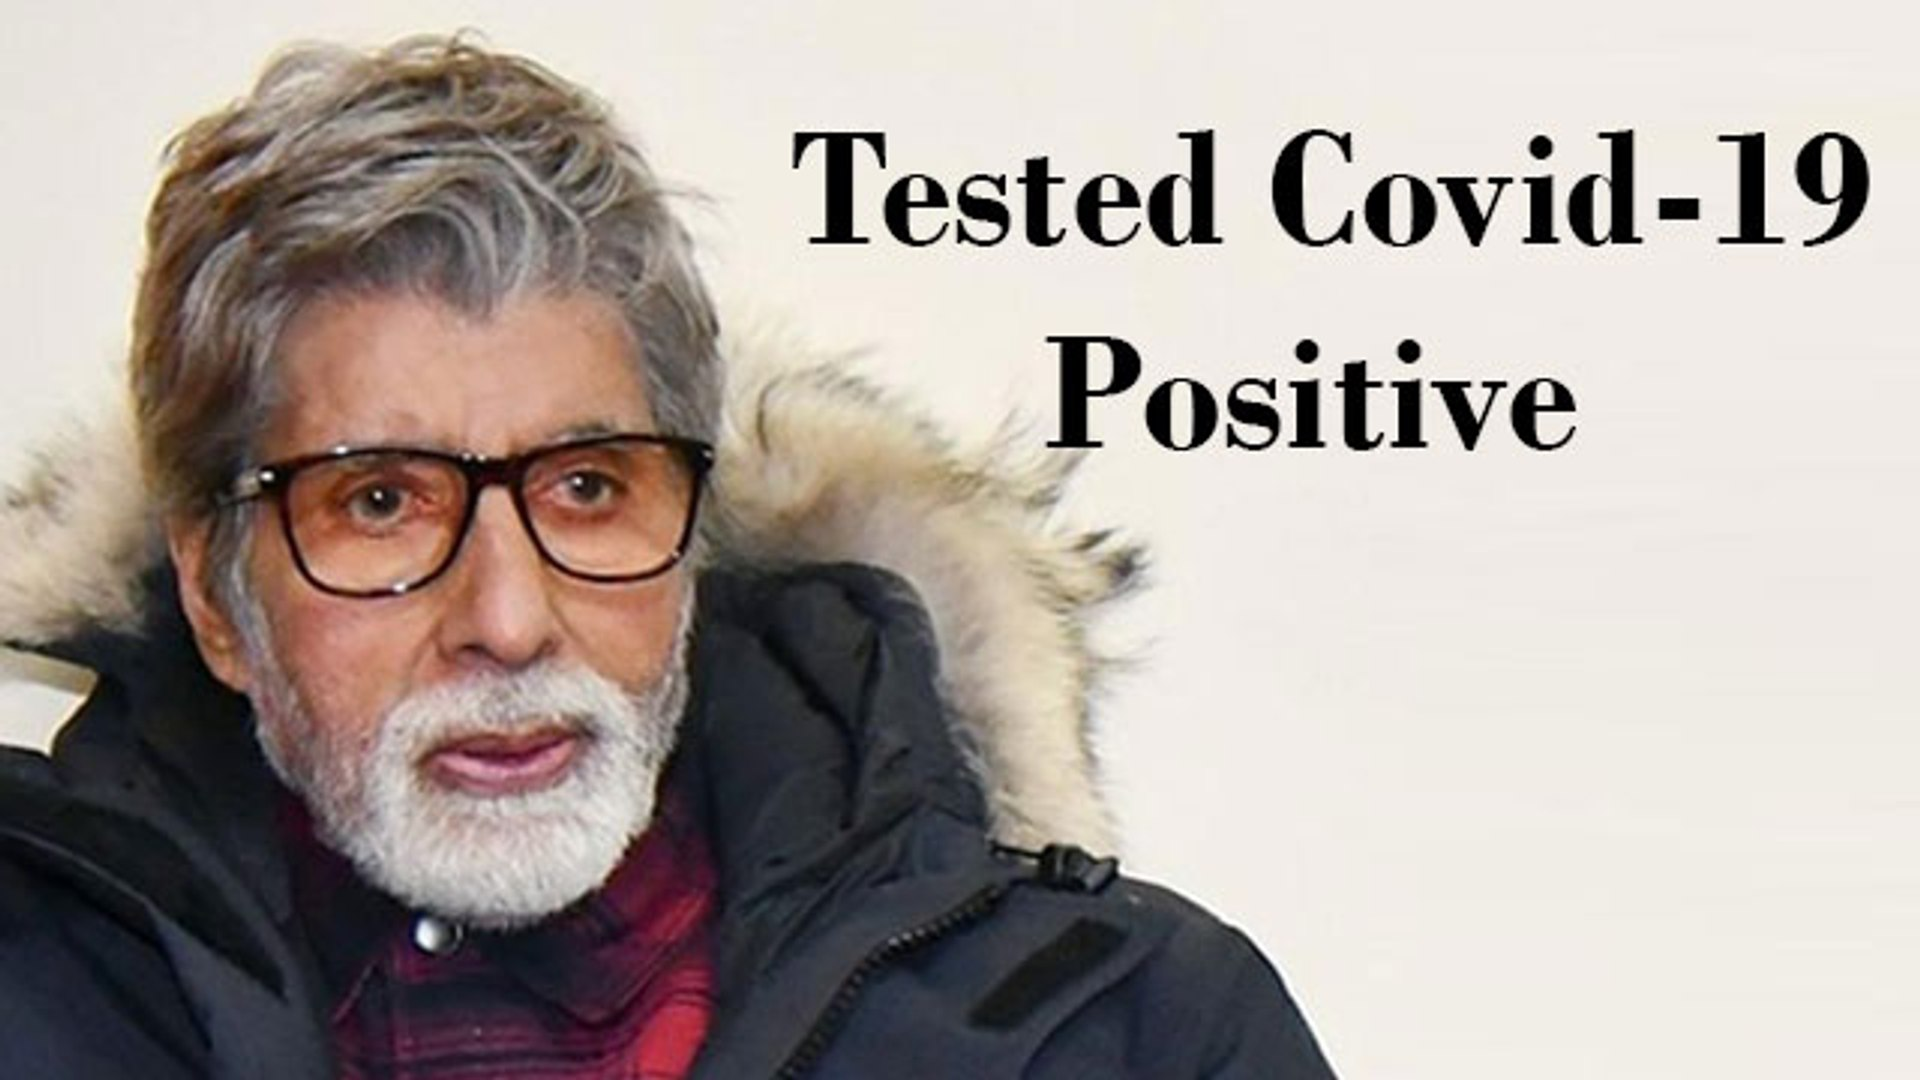 Breaking: Amitabh Bachchan Tested Positive For #Covid19